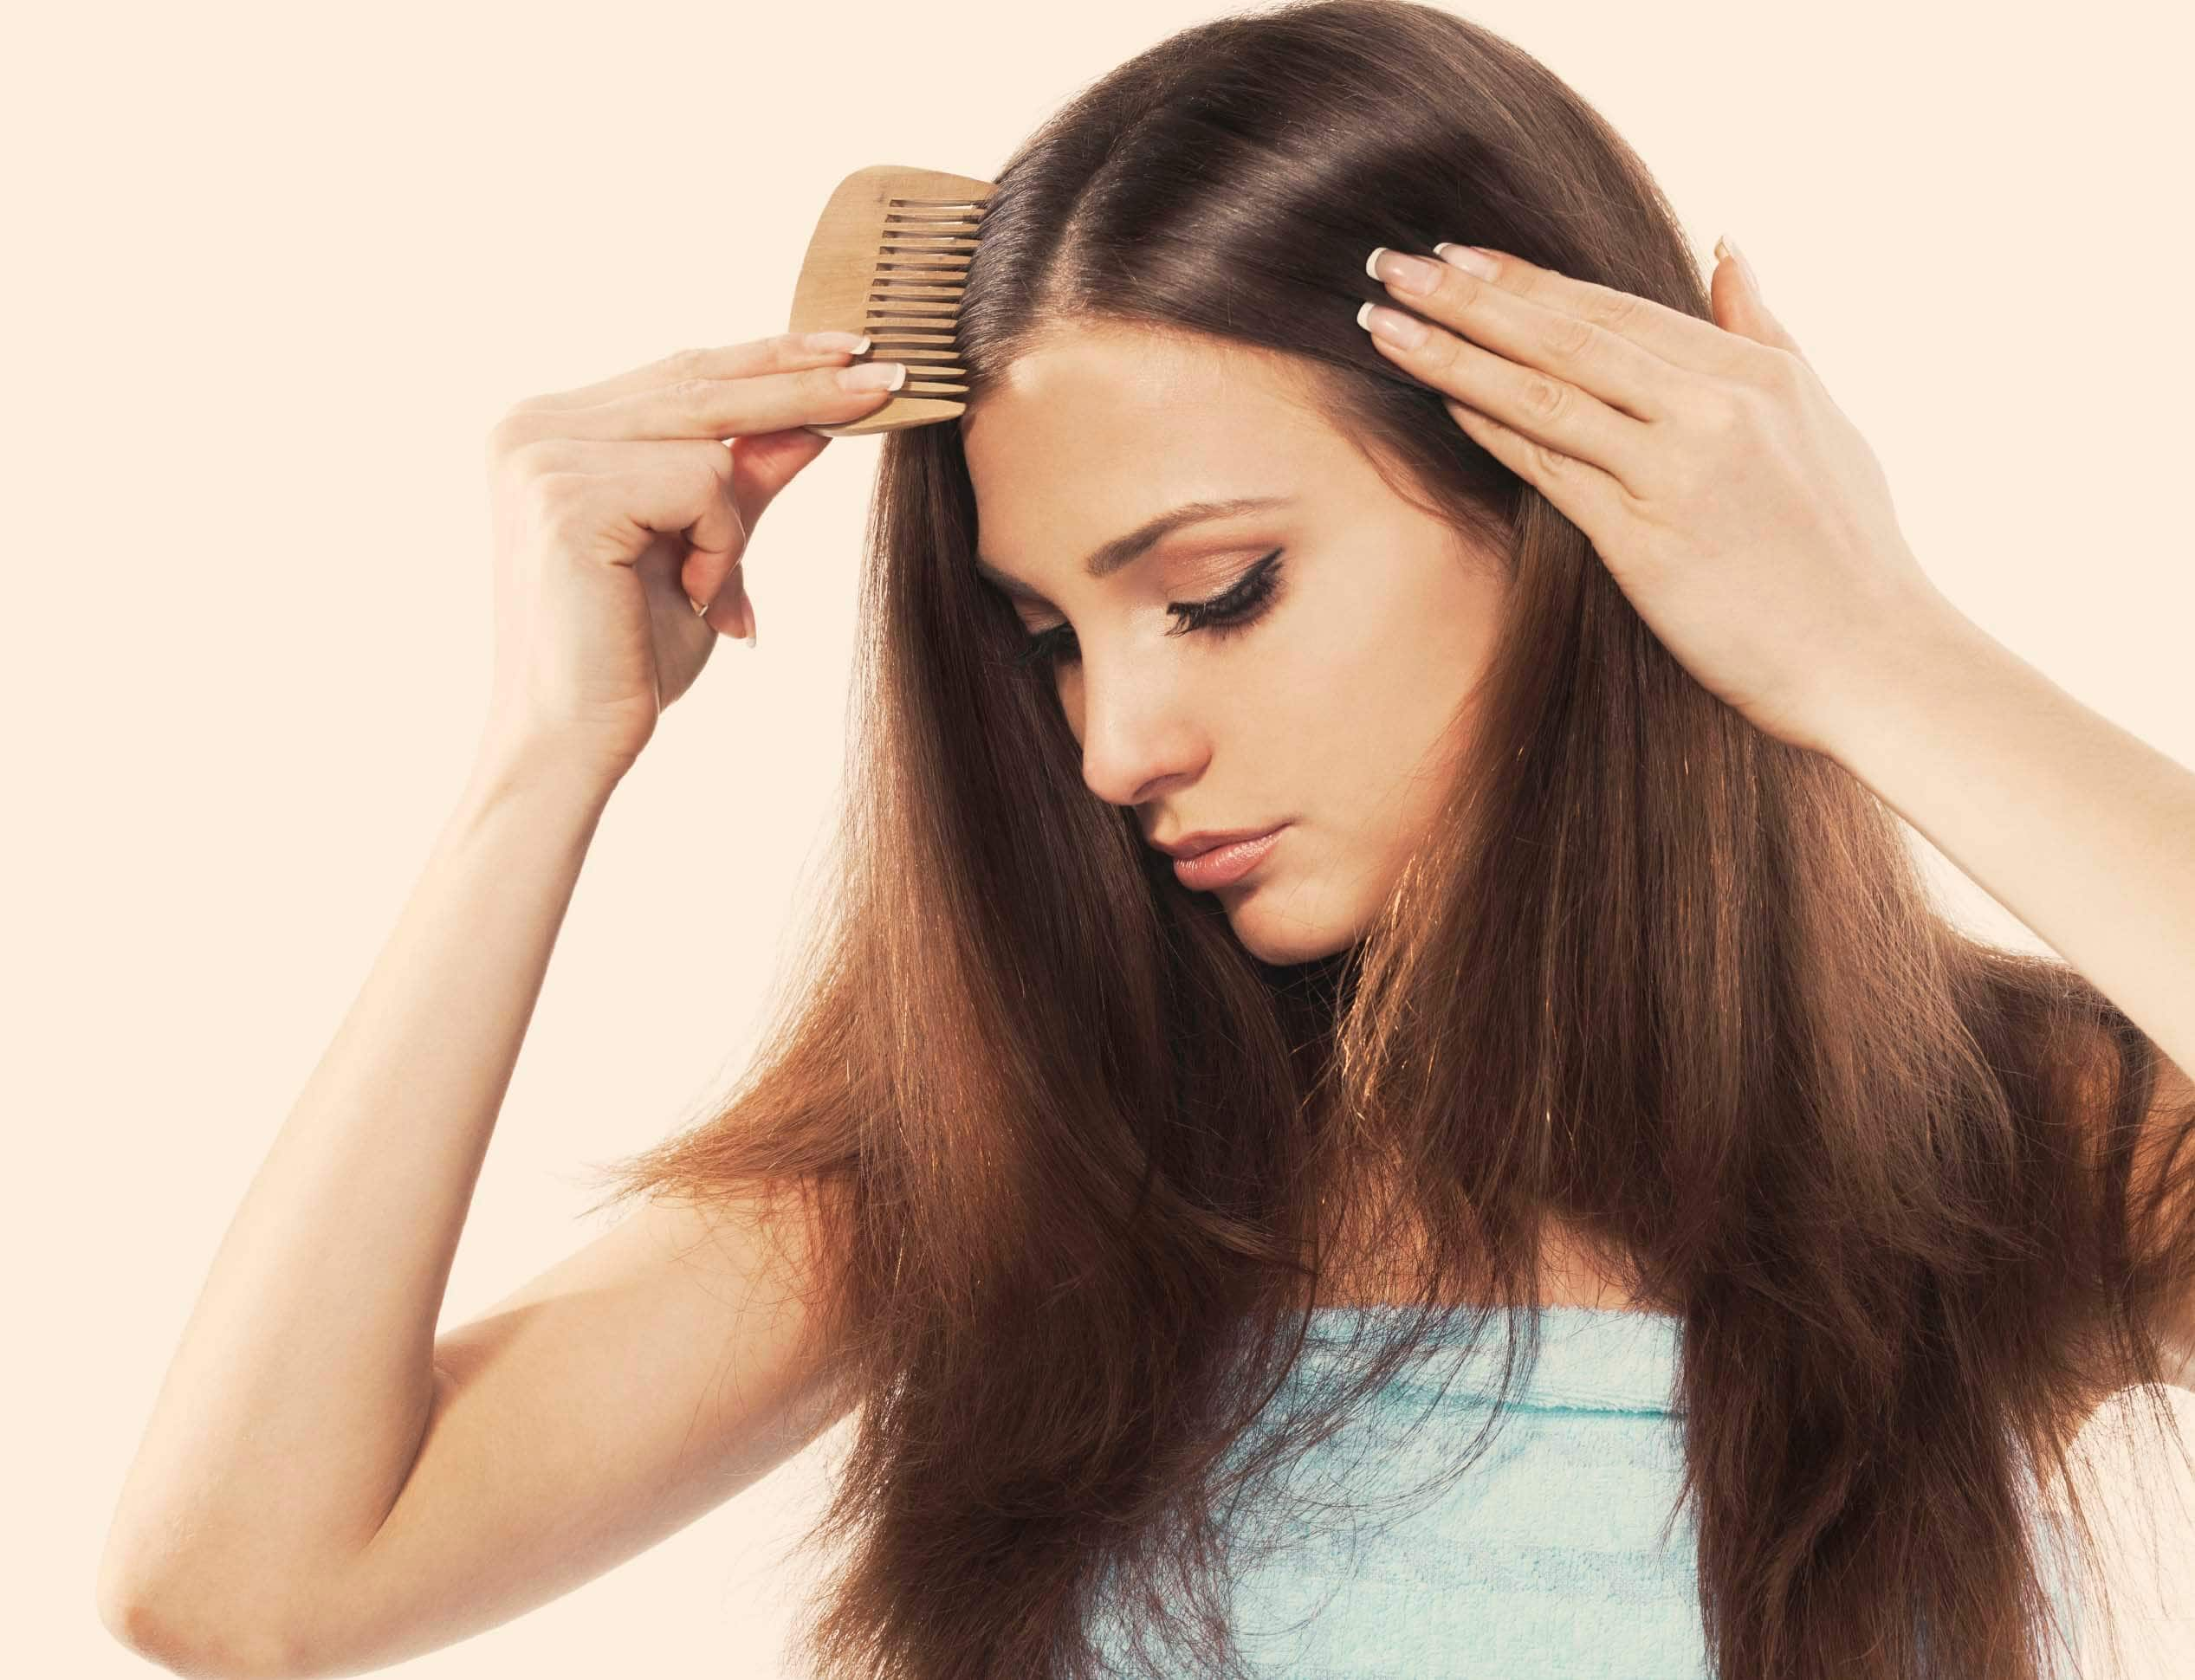 Hair loss: Brunette woman combing her hair and looking down